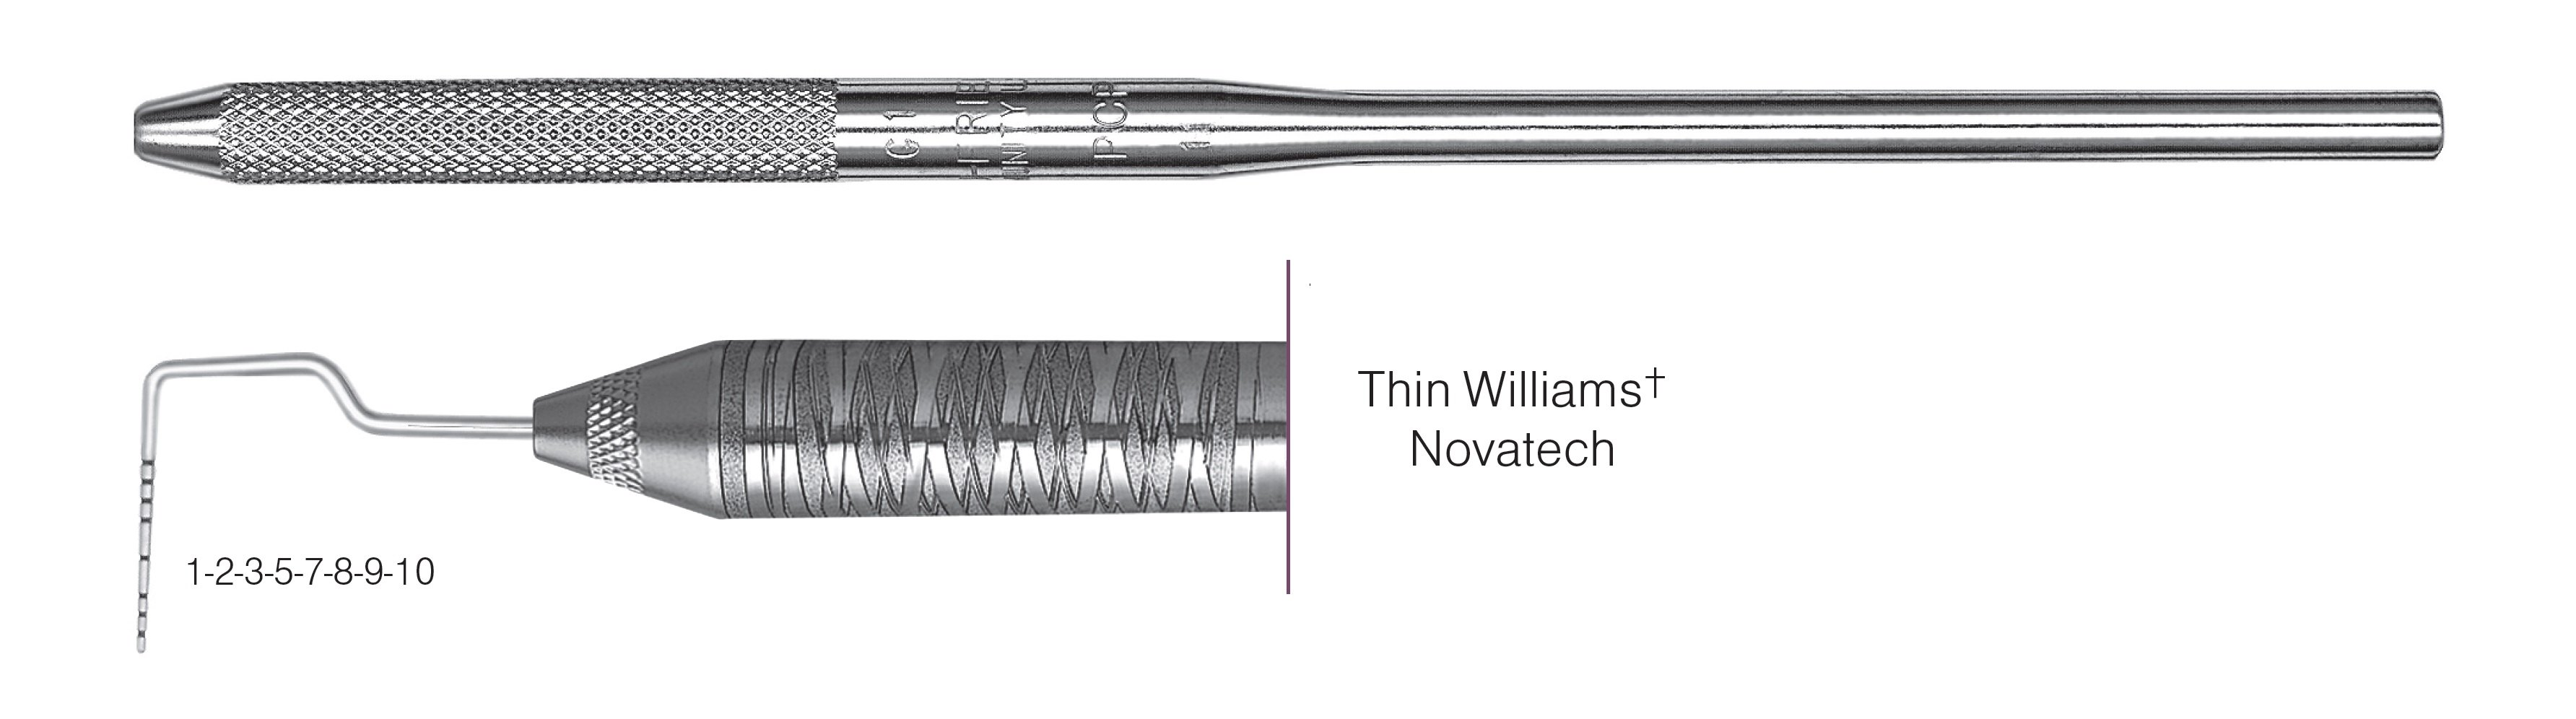 HF-PCPNTOW6-30, Thin Williams+ Novatech Probe, Black markings, 1-2-3-5-7-8-9-10 mm, Handle round, Single End